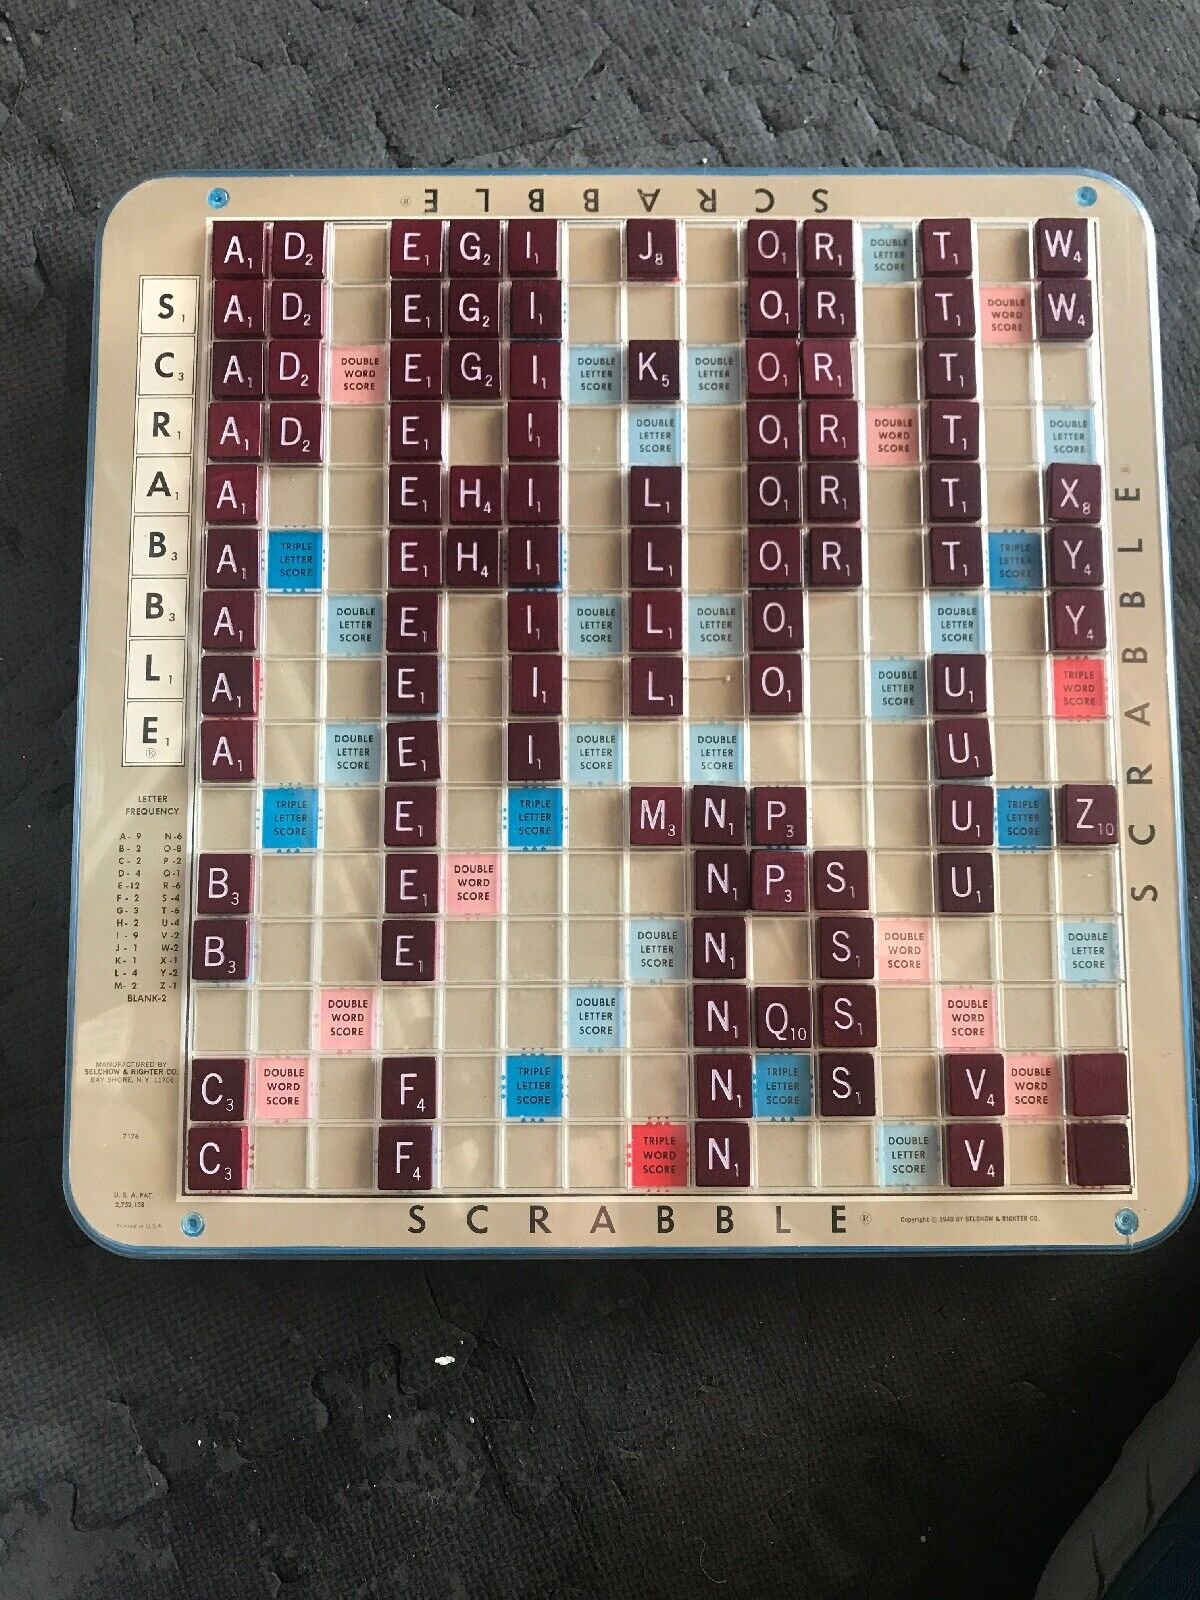 Vintage Deluxe Turntable Scrabble redating Board, Selchow Righter,1977